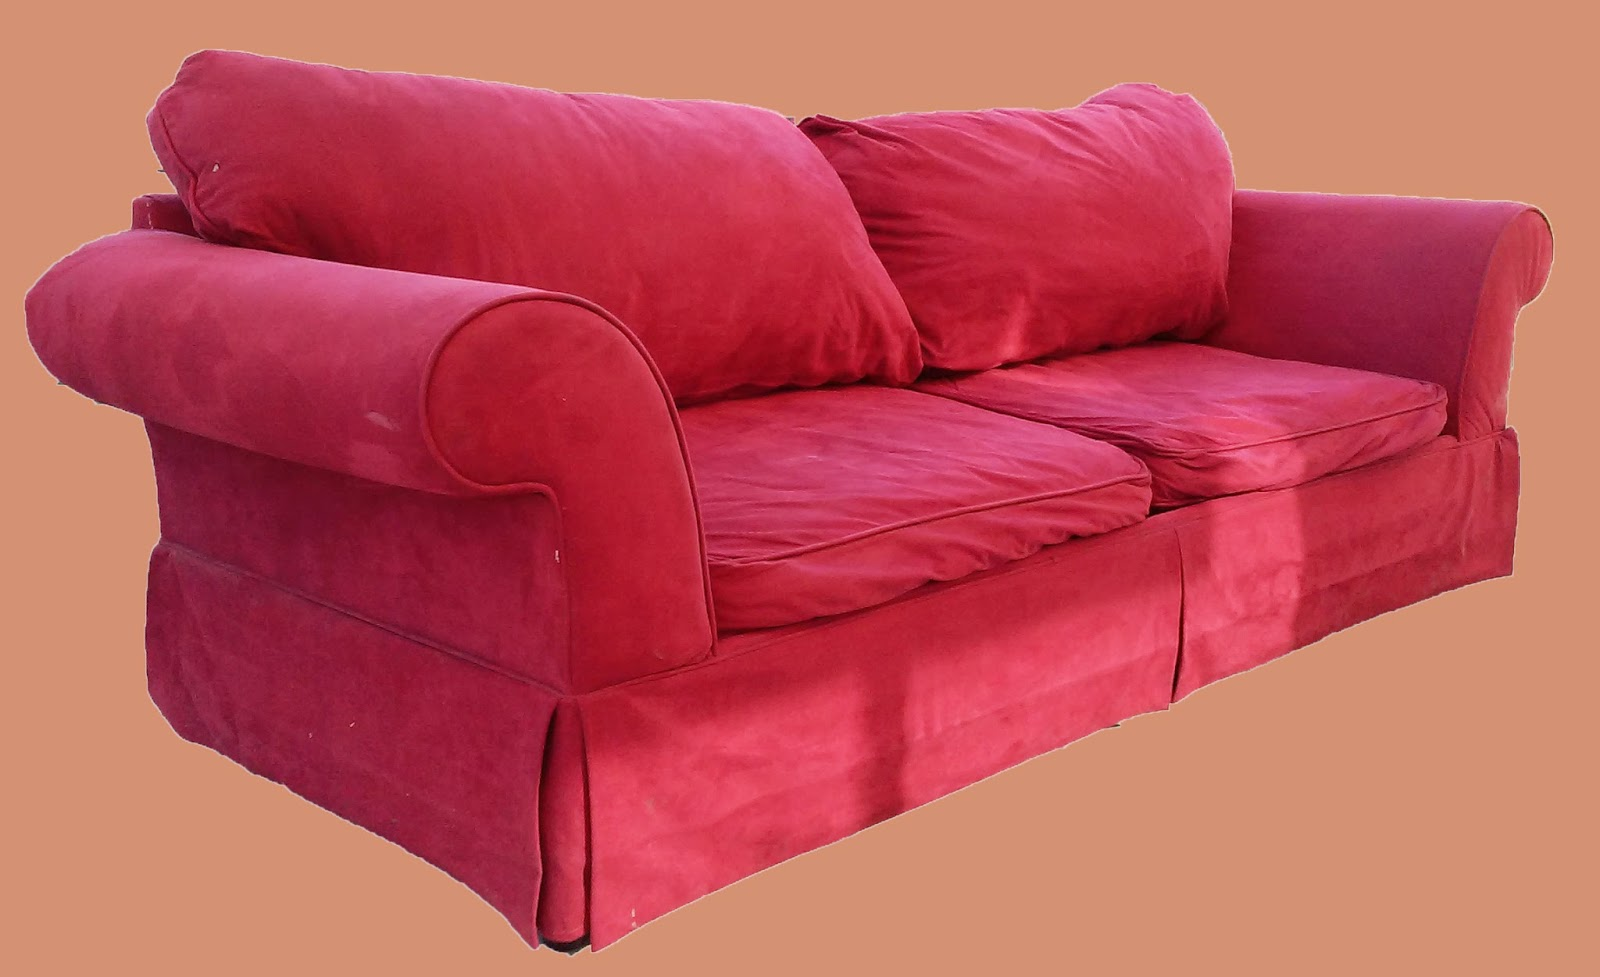 red microfiber reclining sofa cheap sofas for under 100 uhuru furniture and collectibles 175 sold